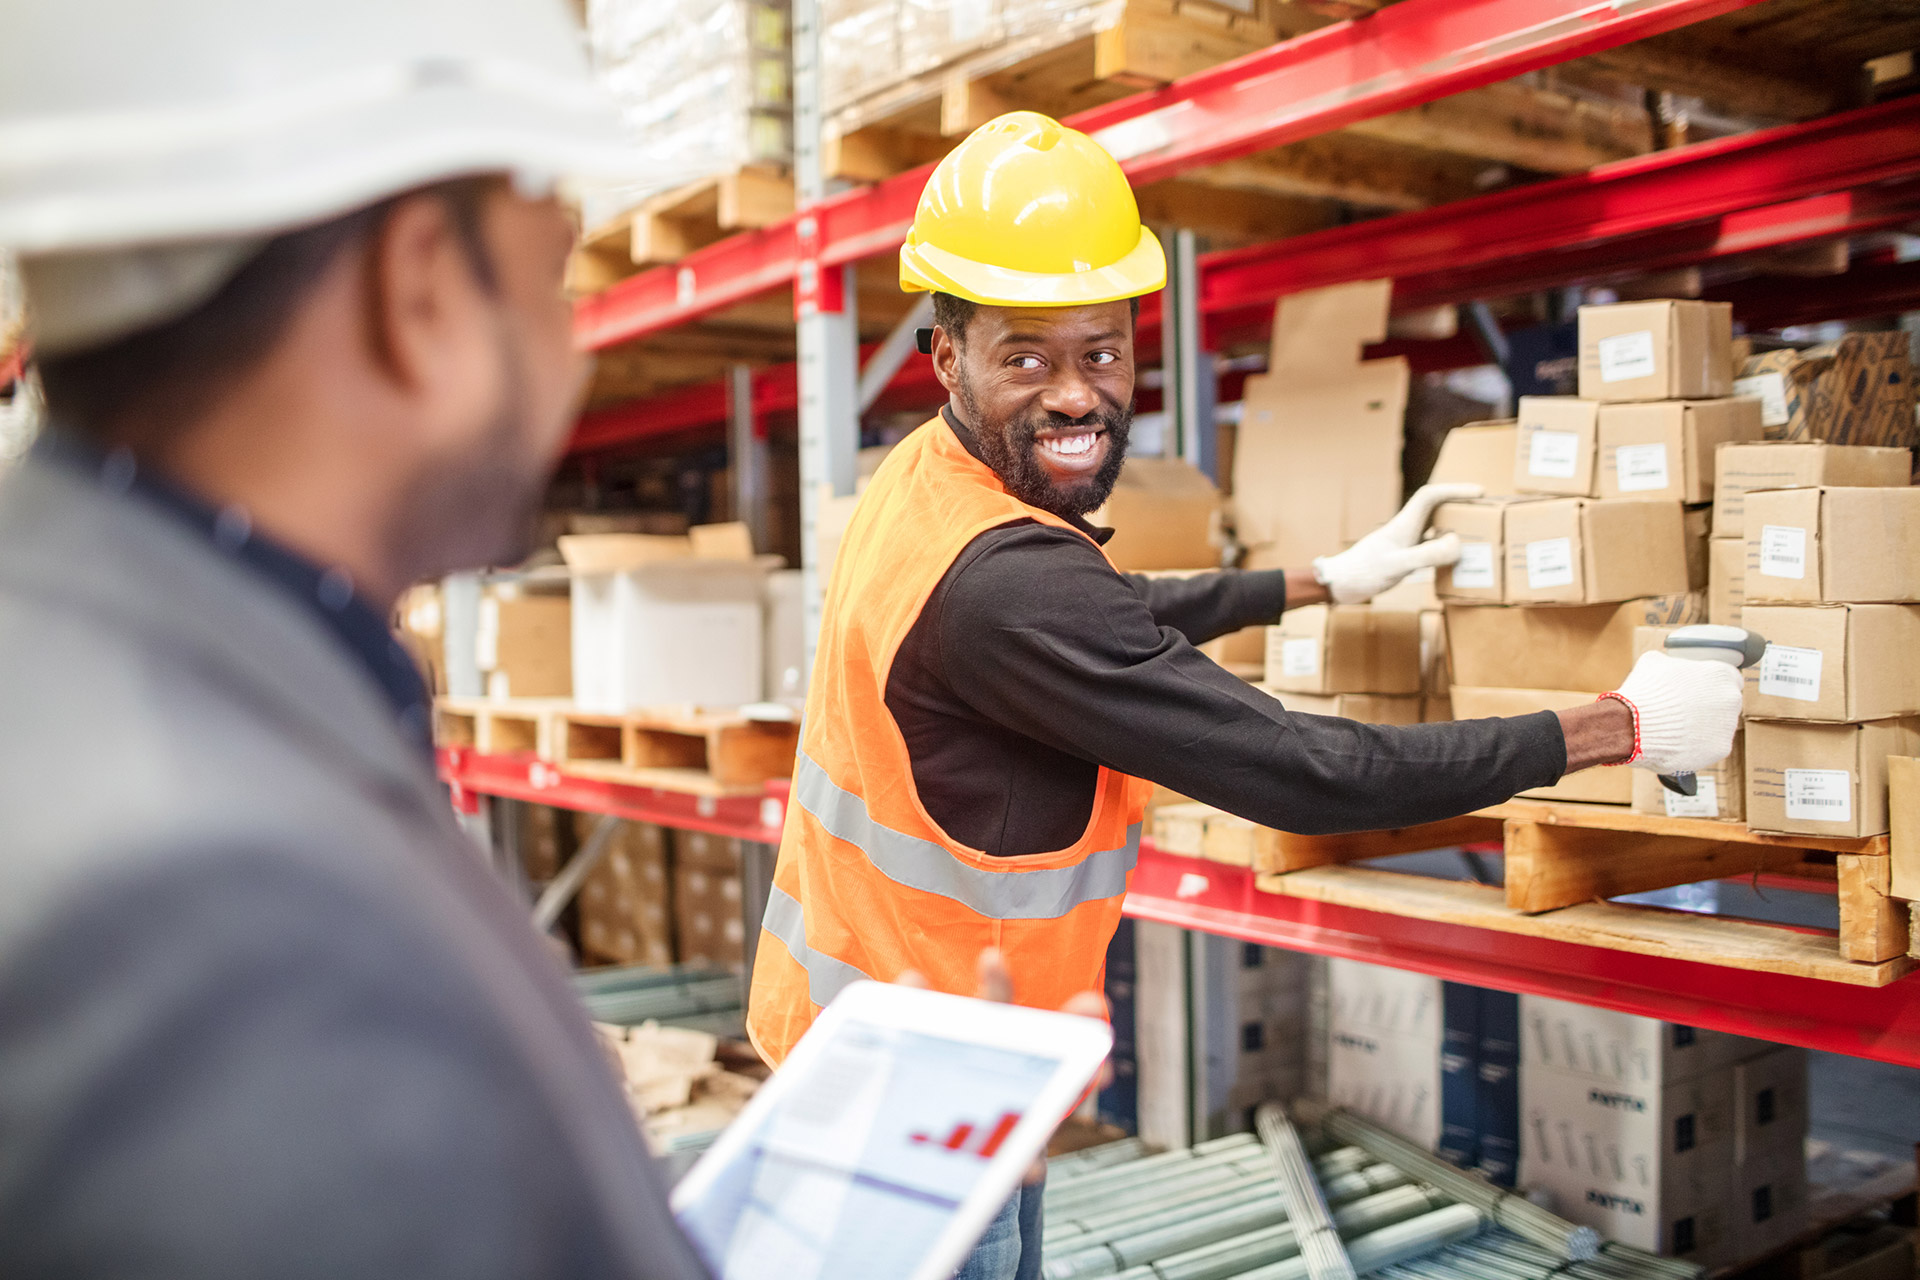 Man being observed in warehouse by training supervisor